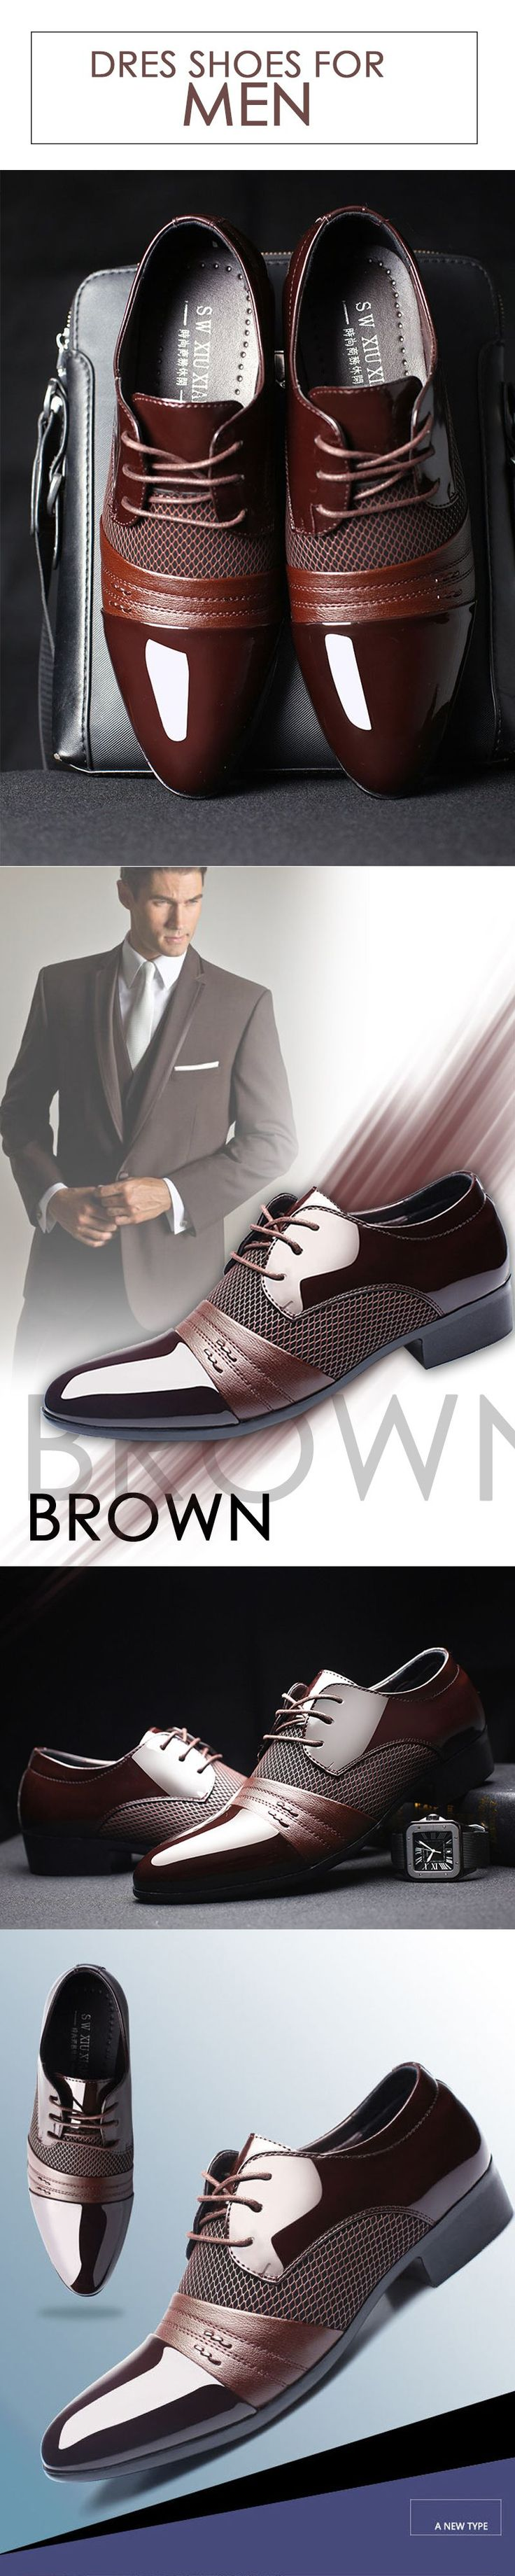 Men's Brown Oxford classic leather shoes --- Men's top brand fashion style business casual affordable attire apparel #oxfordshoes #classicshoes #menshoes #menstyle